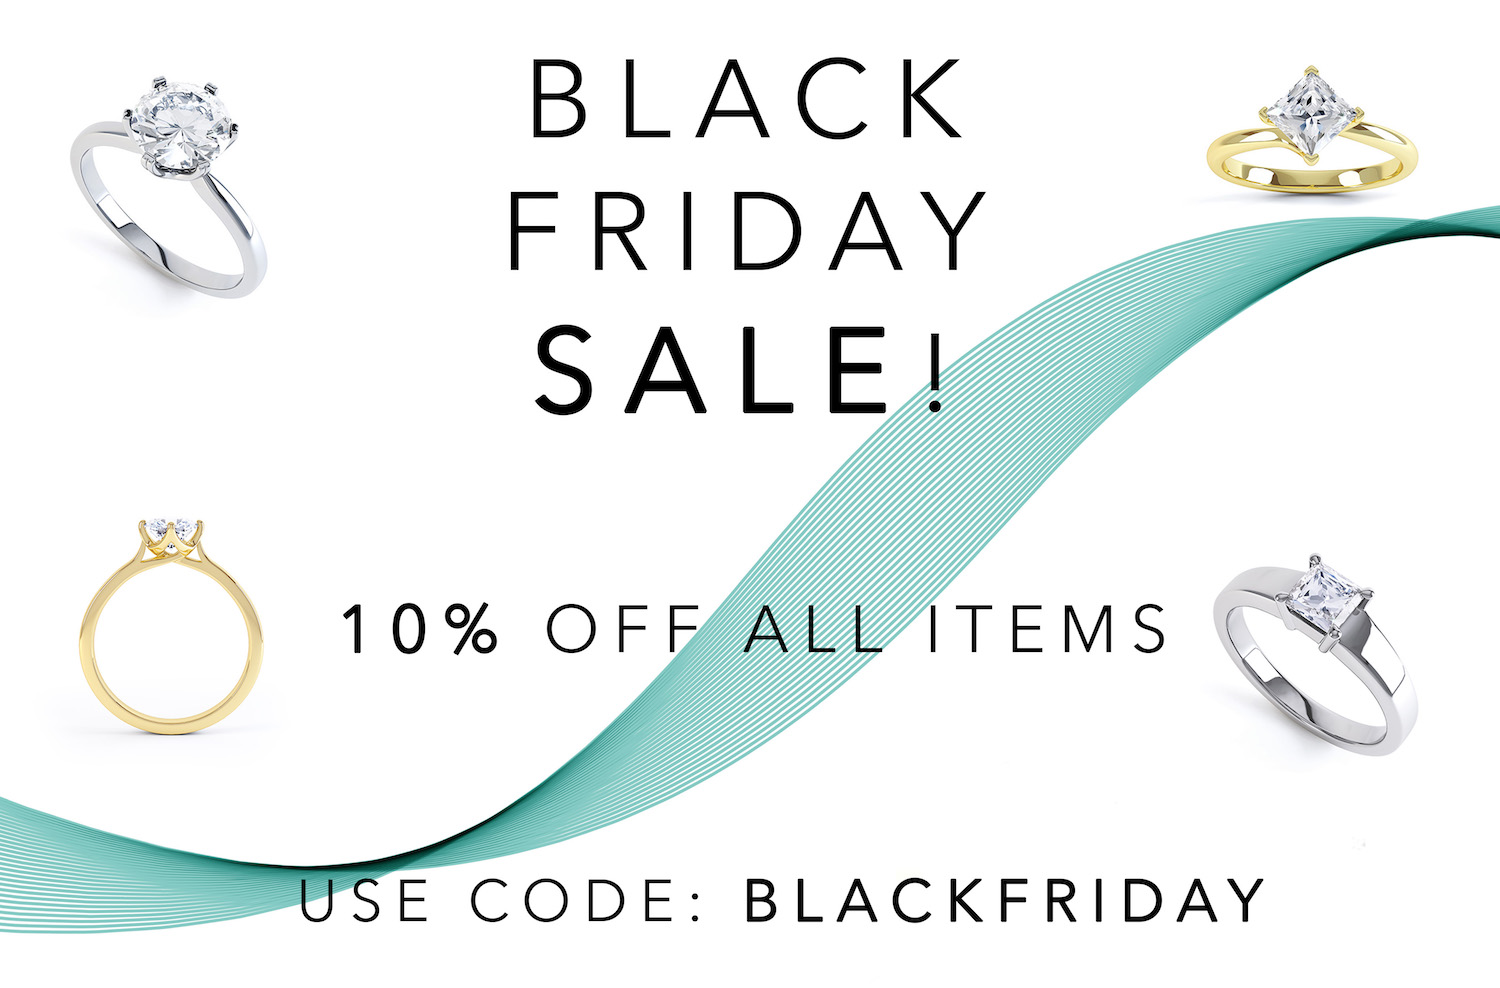 Black Friday Sale now on! 10% off all items! Use code BLACKFRIDAY on checkout